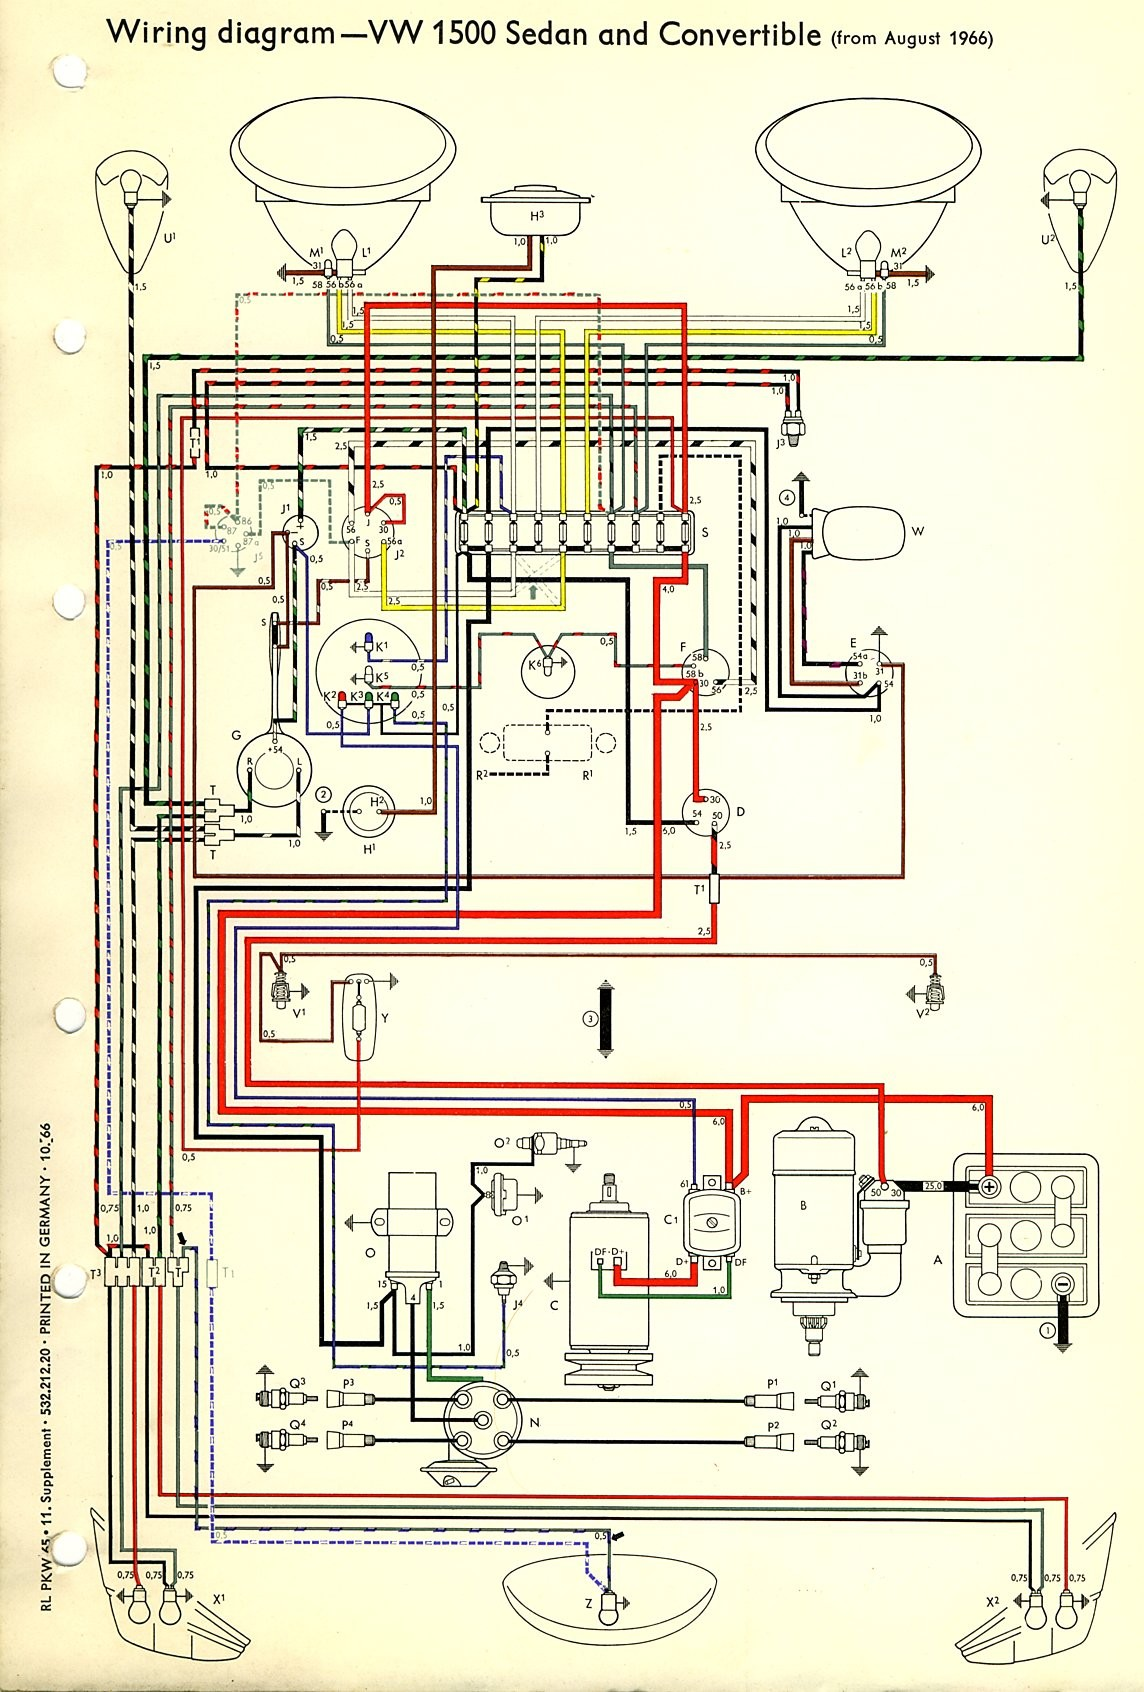 1970 vw wiring harness